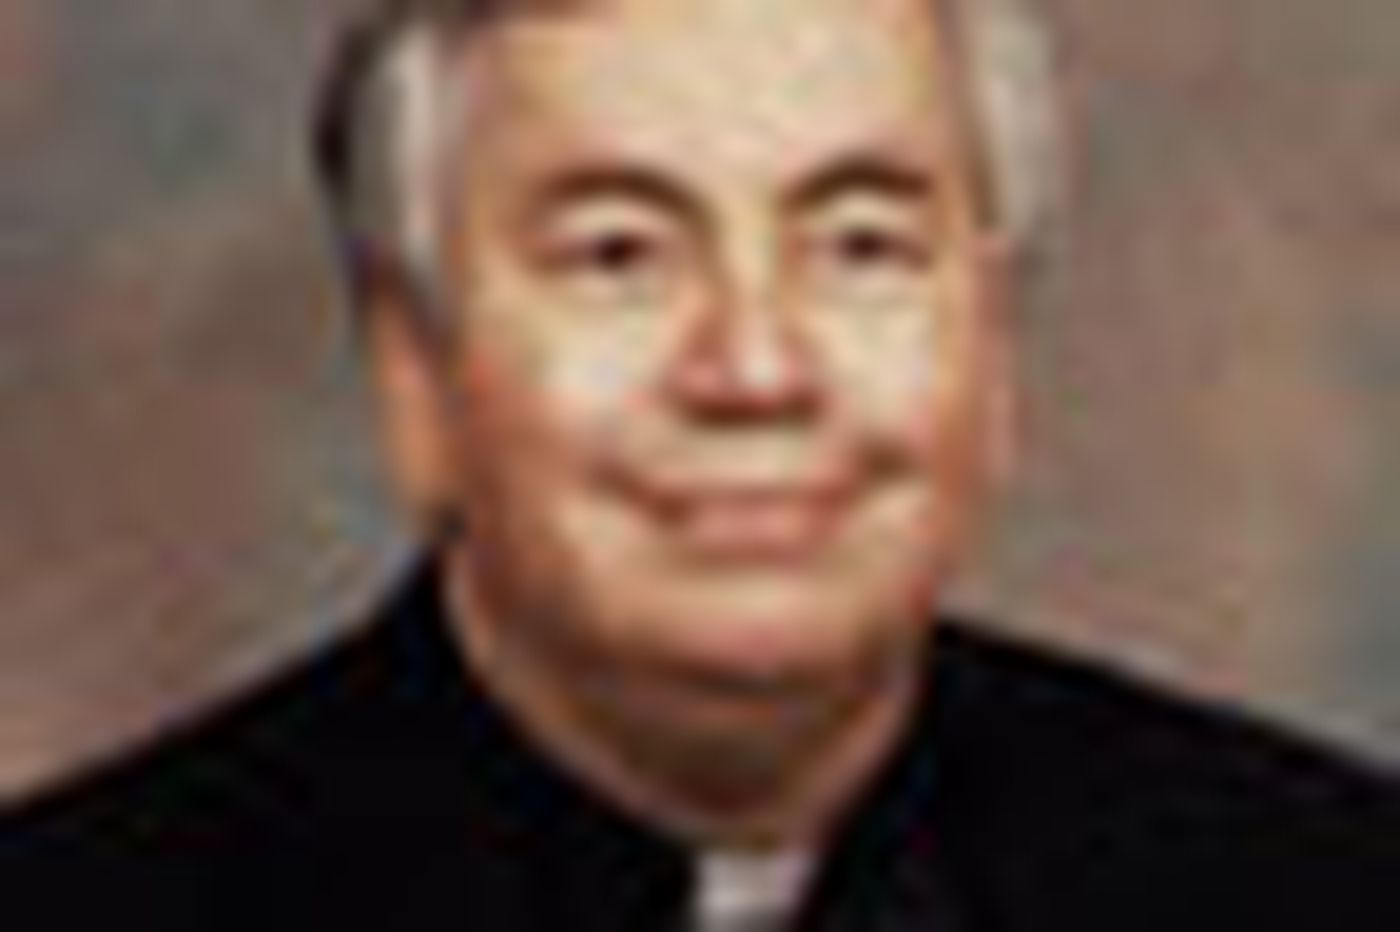 Witness, 56, says priest fondled her when she was 12